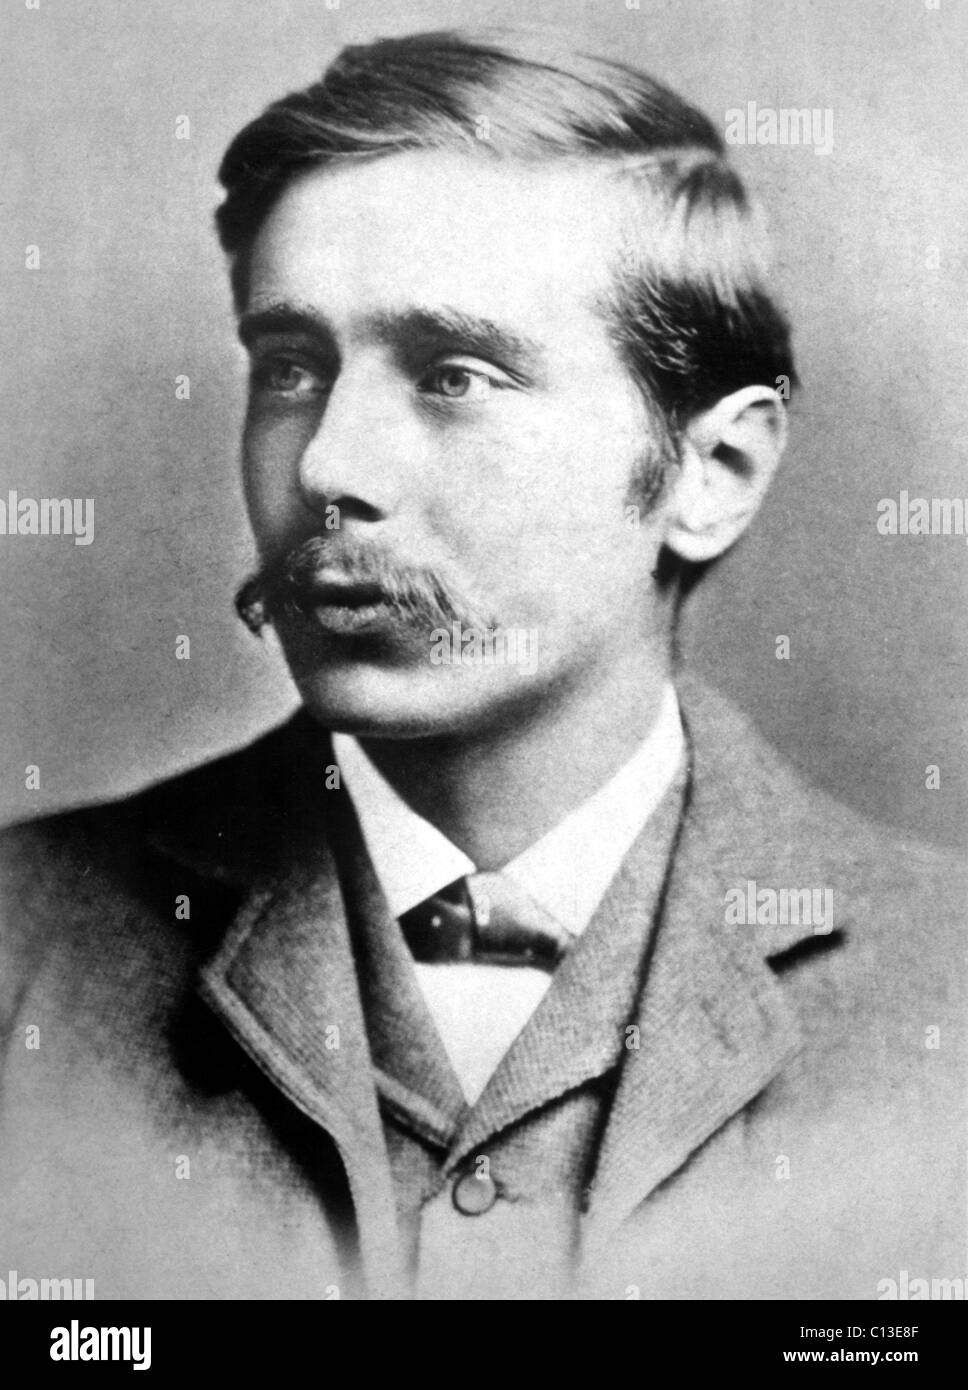 H.G. Wells, author as a young man, in the 1800s. - Stock Image